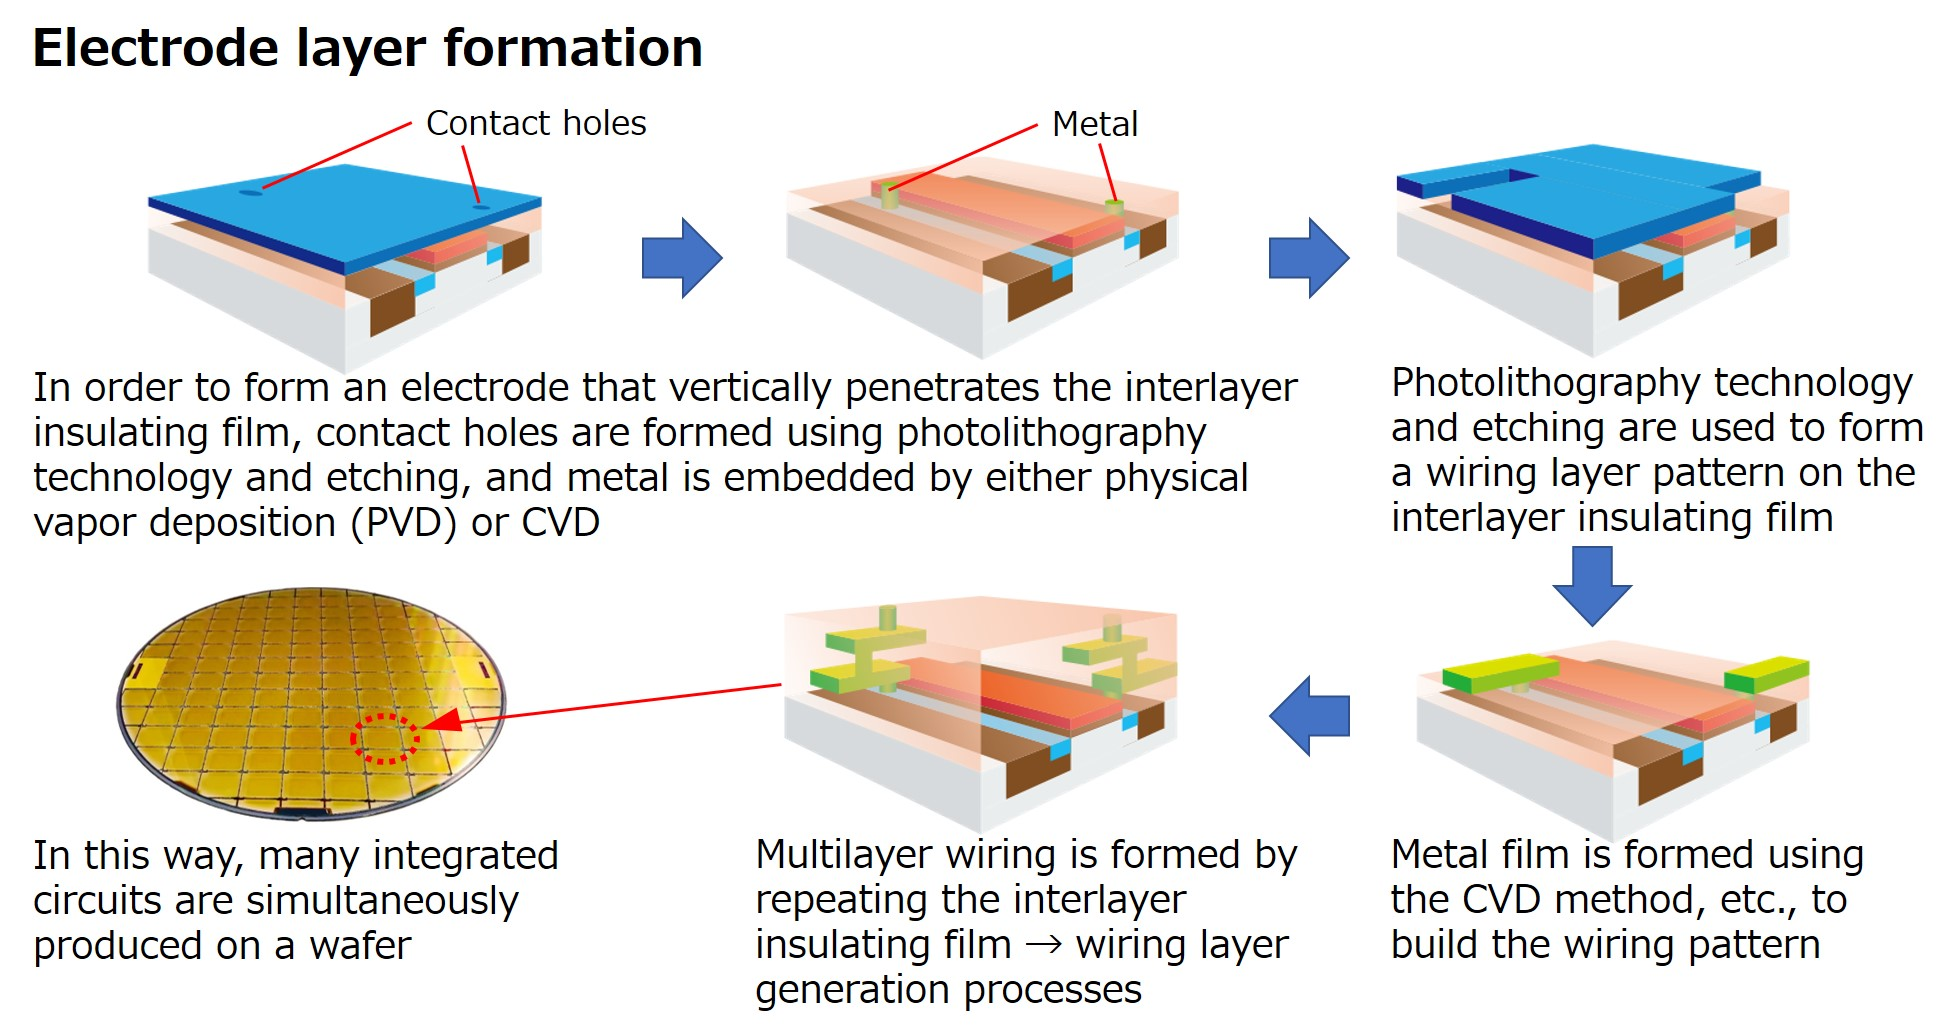 Electrode layer formation